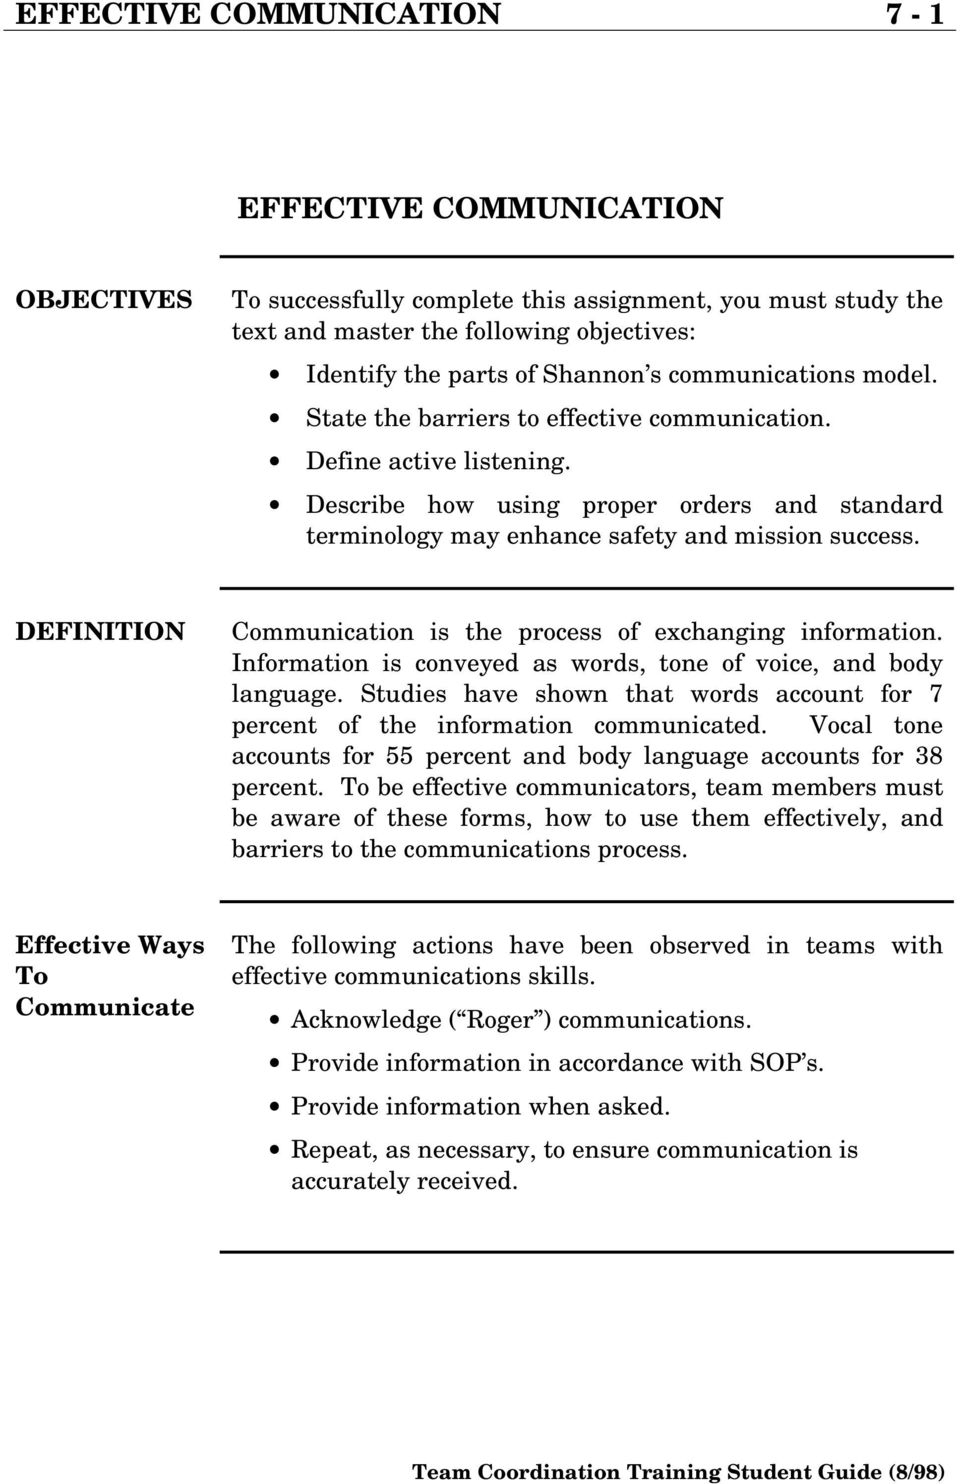 effective communication 7-1 effective communication - pdf